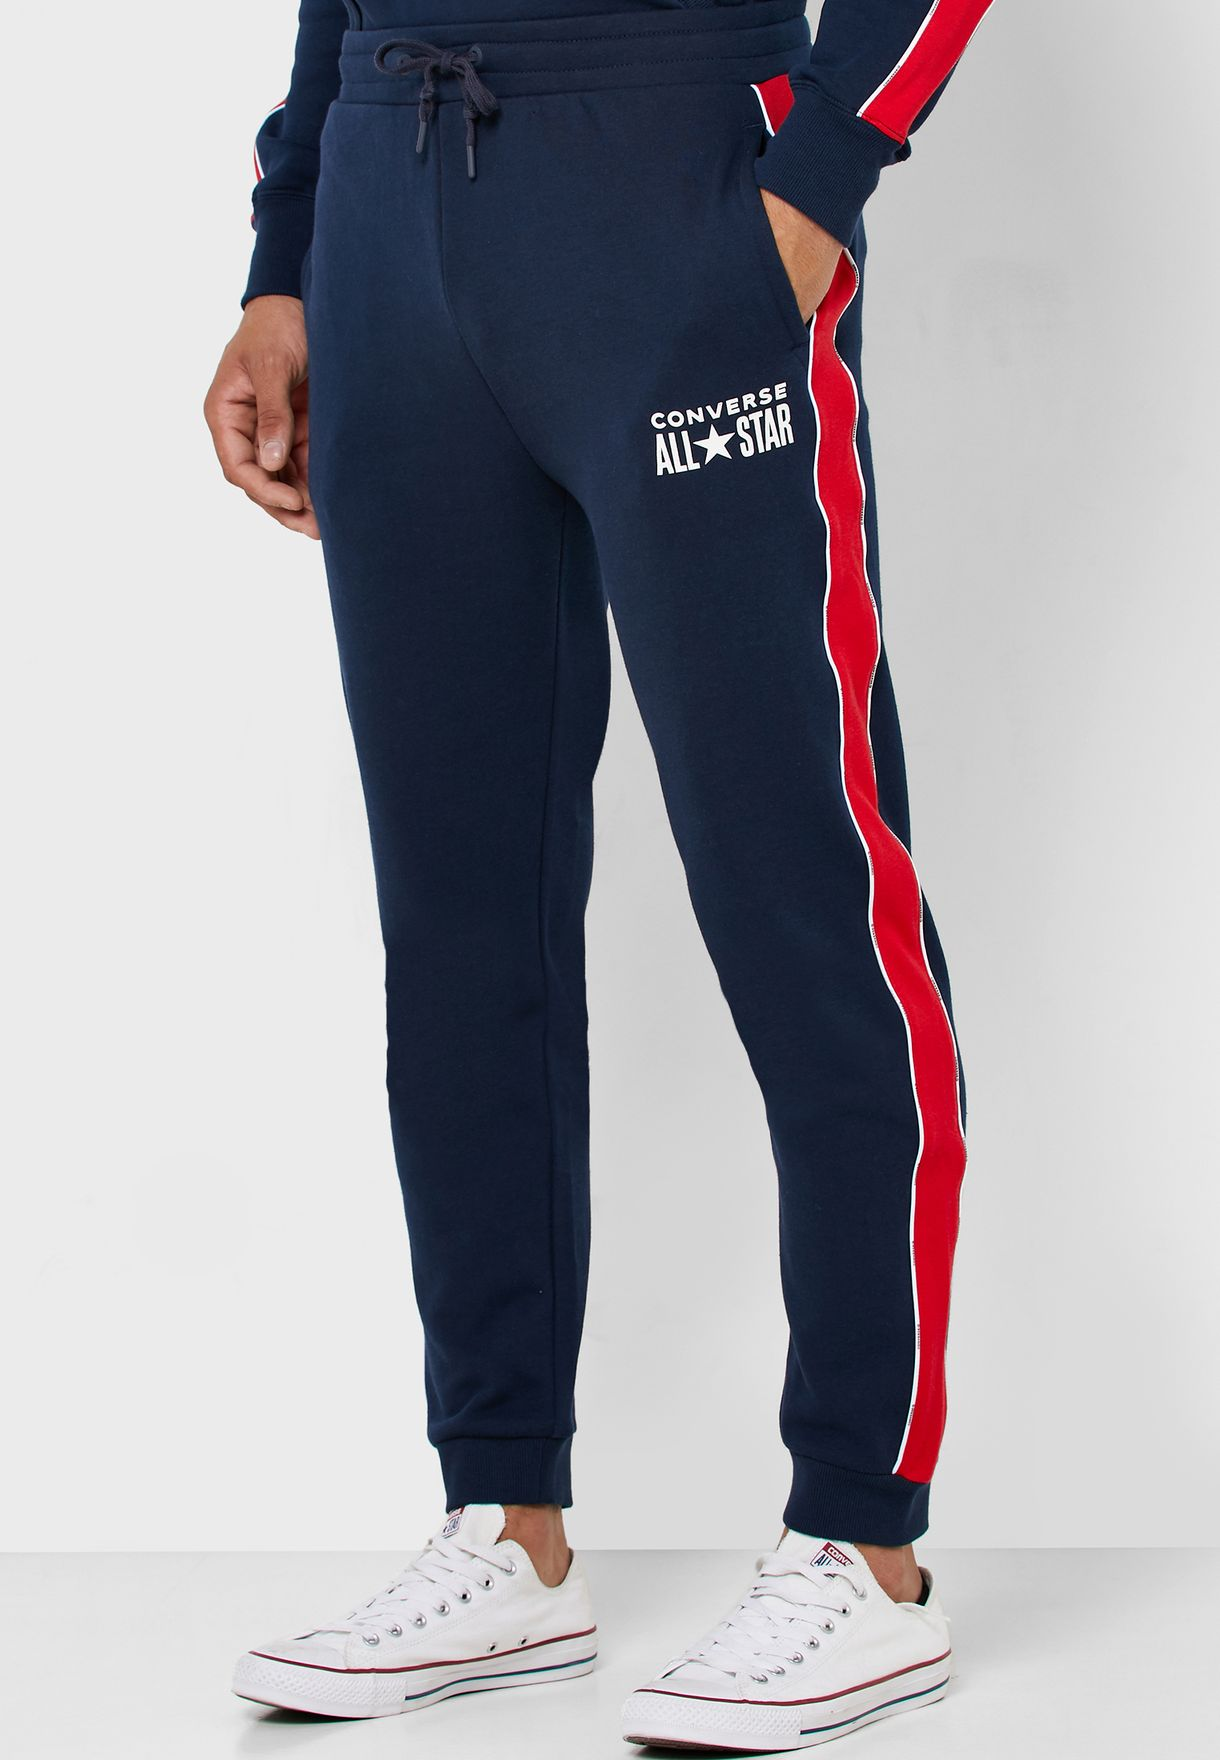 All Star Track Pants